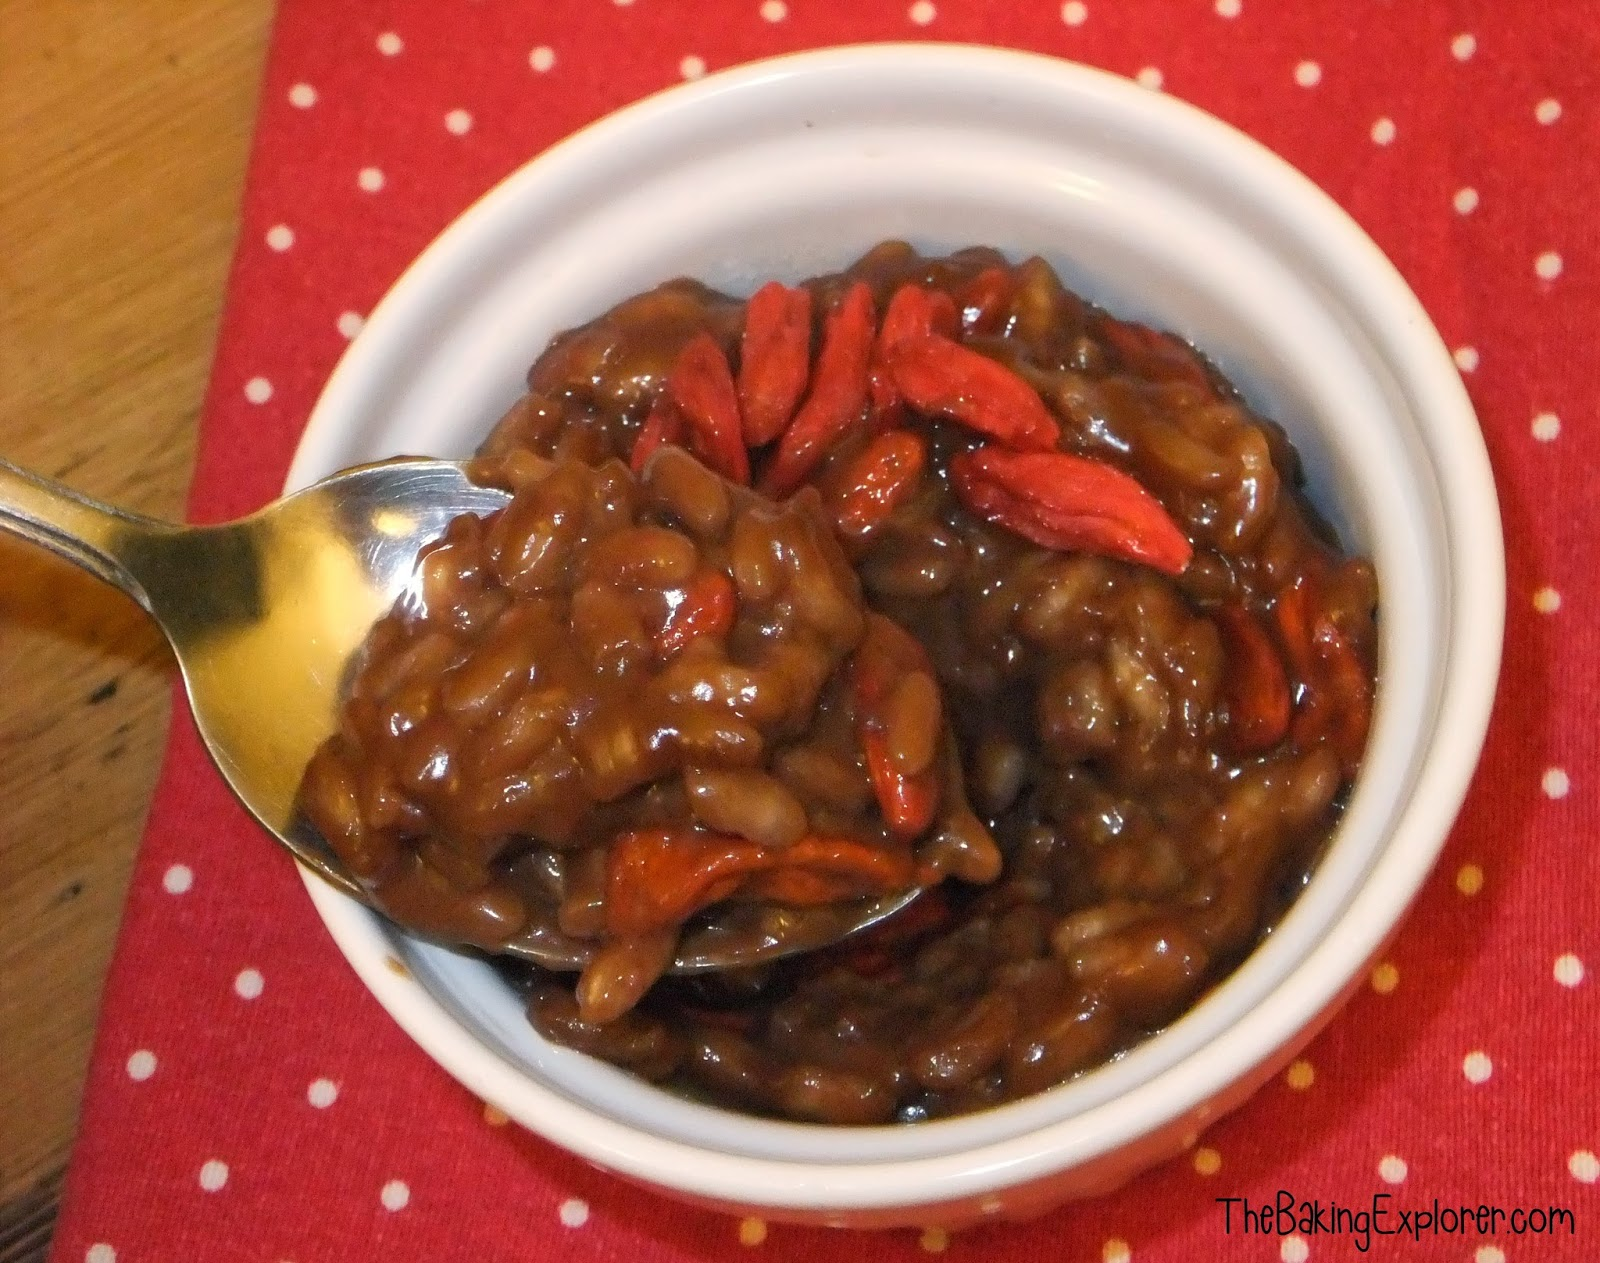 The Baking Explorer: Chocolate & Goji Berry Risotto